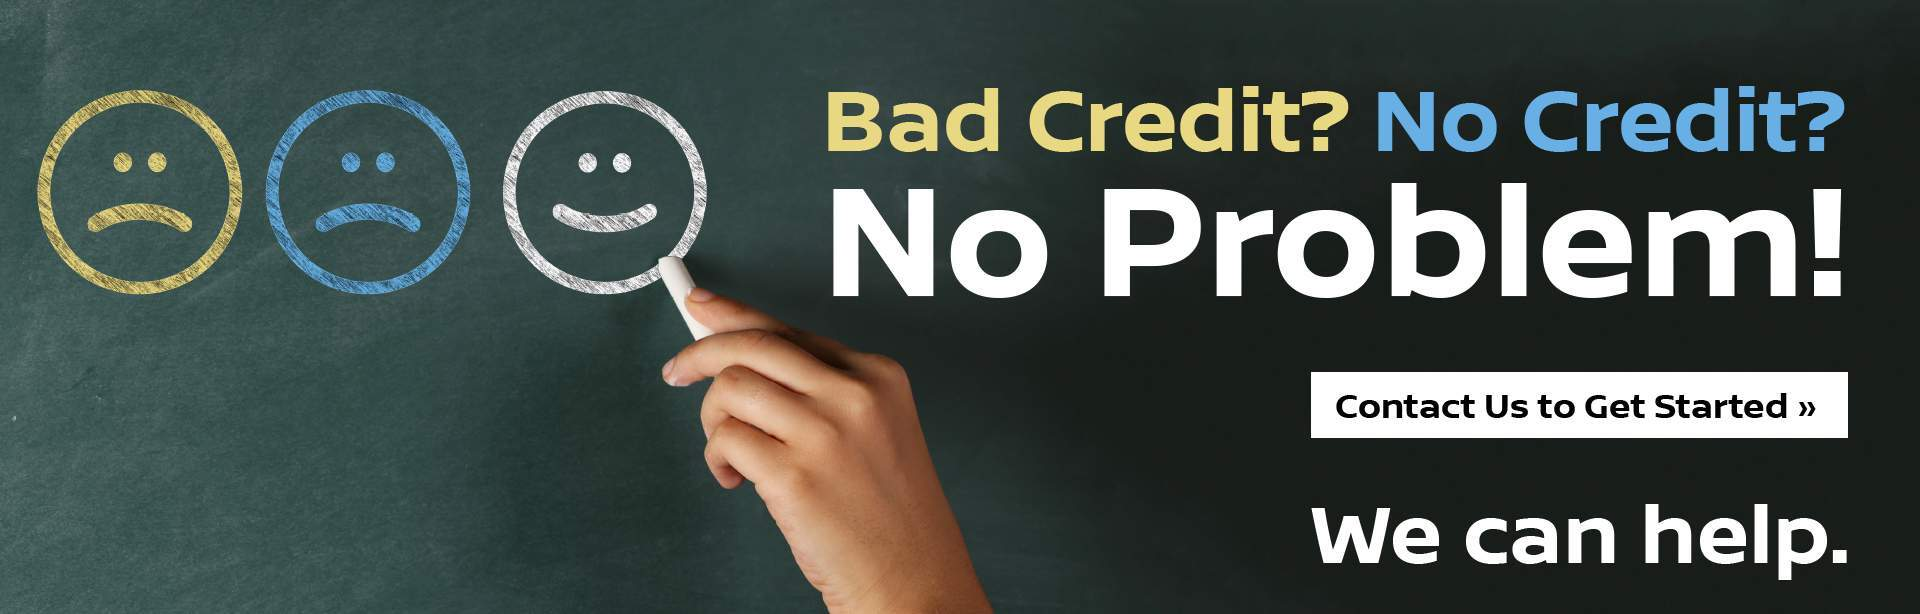 Nissan Bad Credit No Credit